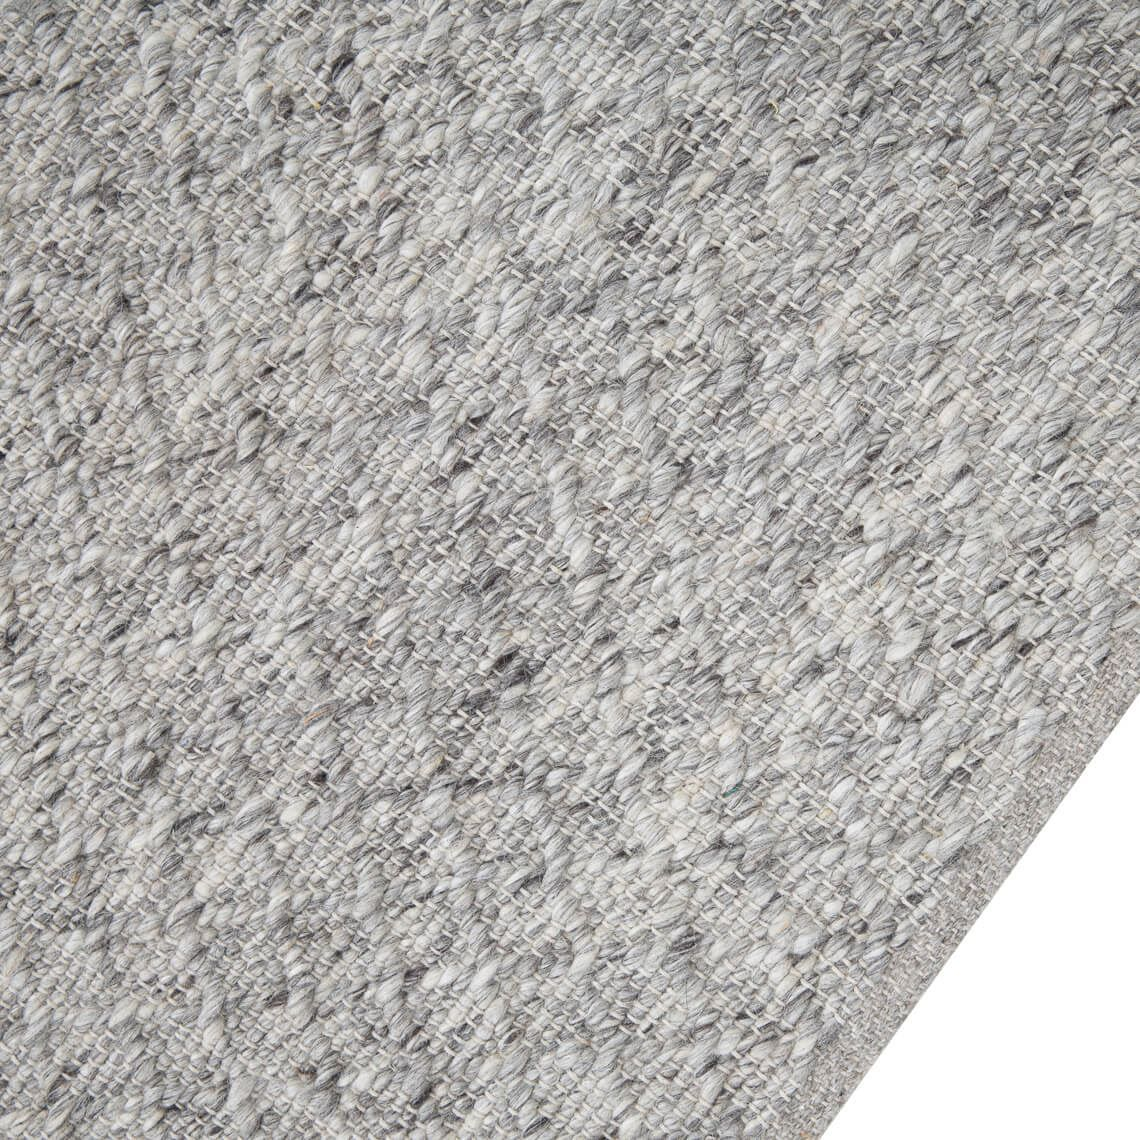 Freedom Furniture Rugs Elias 160x230cm Rug Natural Grey Products Rugs Natural Rug